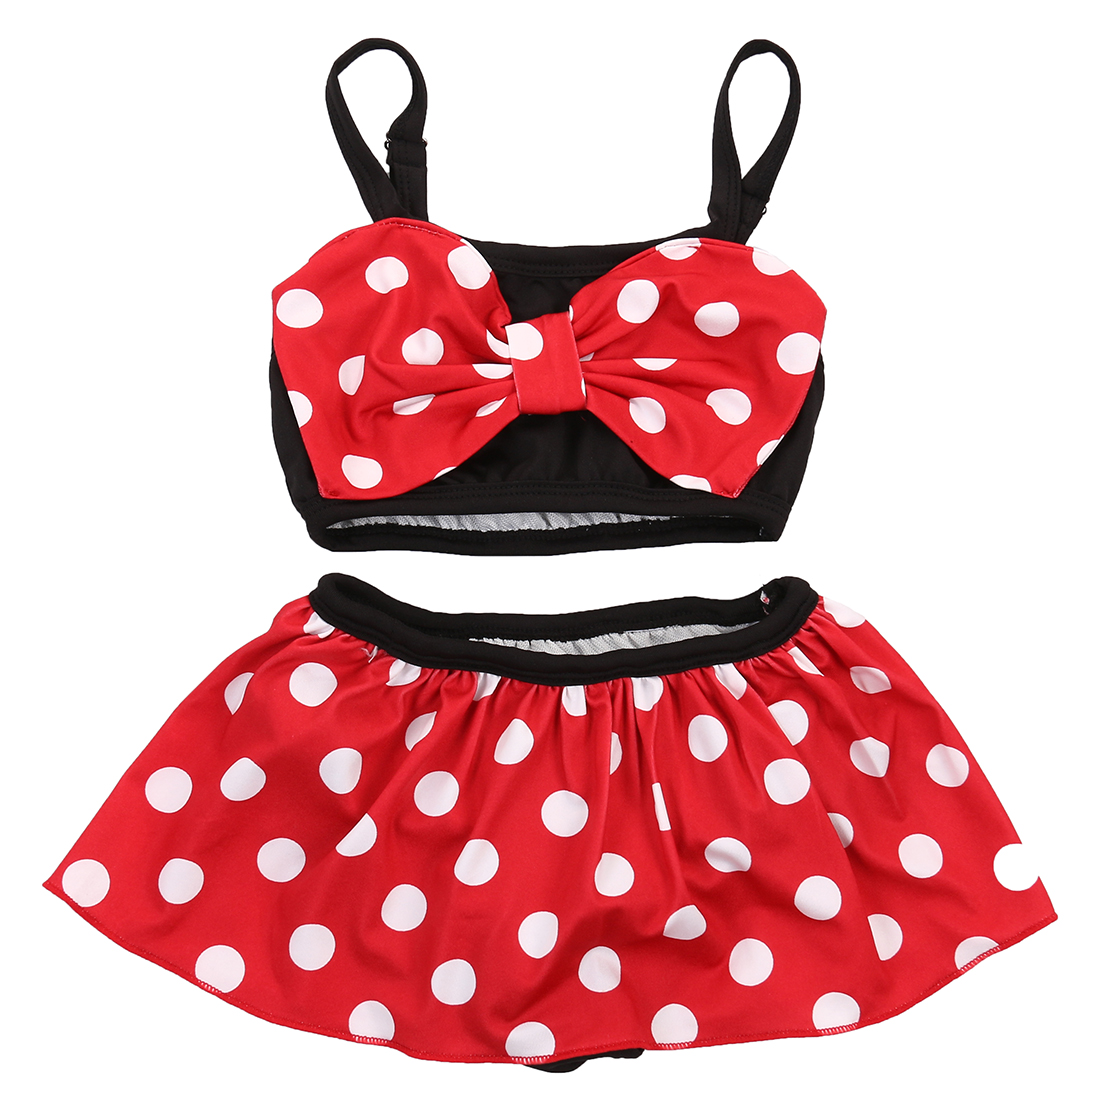 0-5Y Baby Girls Ploka Dot Lovely Cute Pretty Bikini Dress Suit Minnie Bottoms Swimsuit Swimwear Bathing Suit